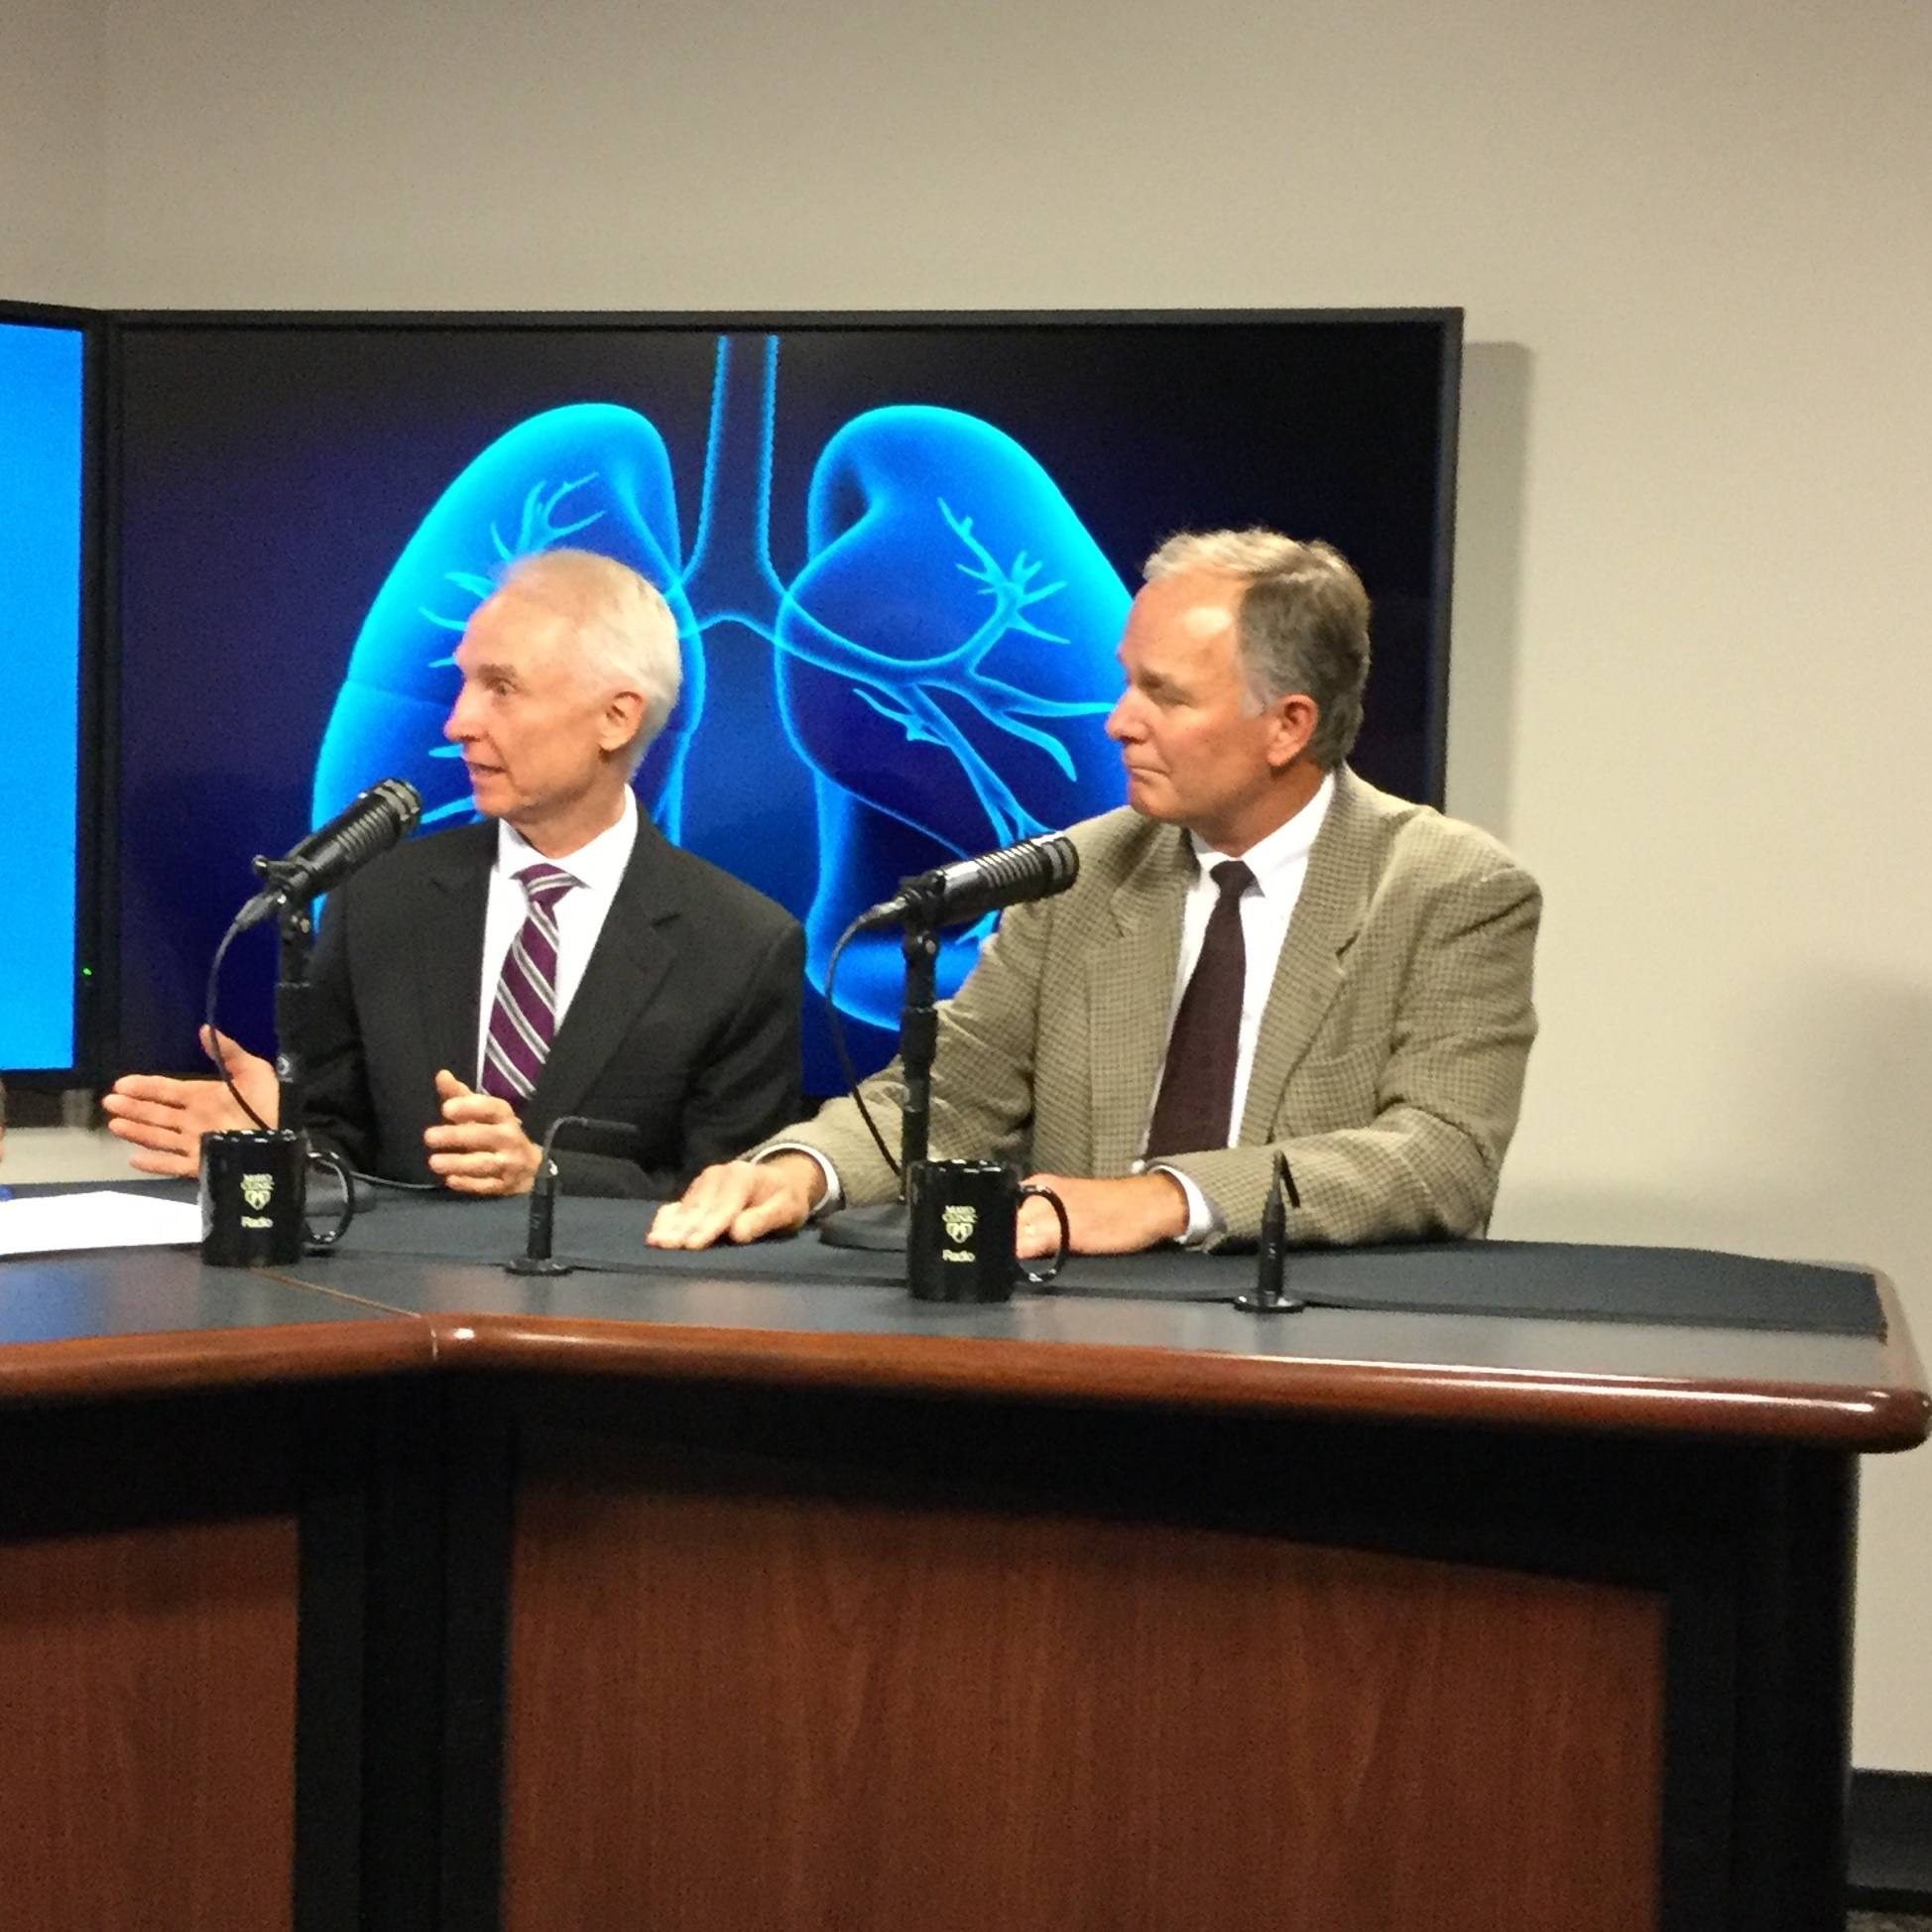 Dr. David Midthun and Dr. J. Taylor Hays being interviewed on Mayo Clinic Radio